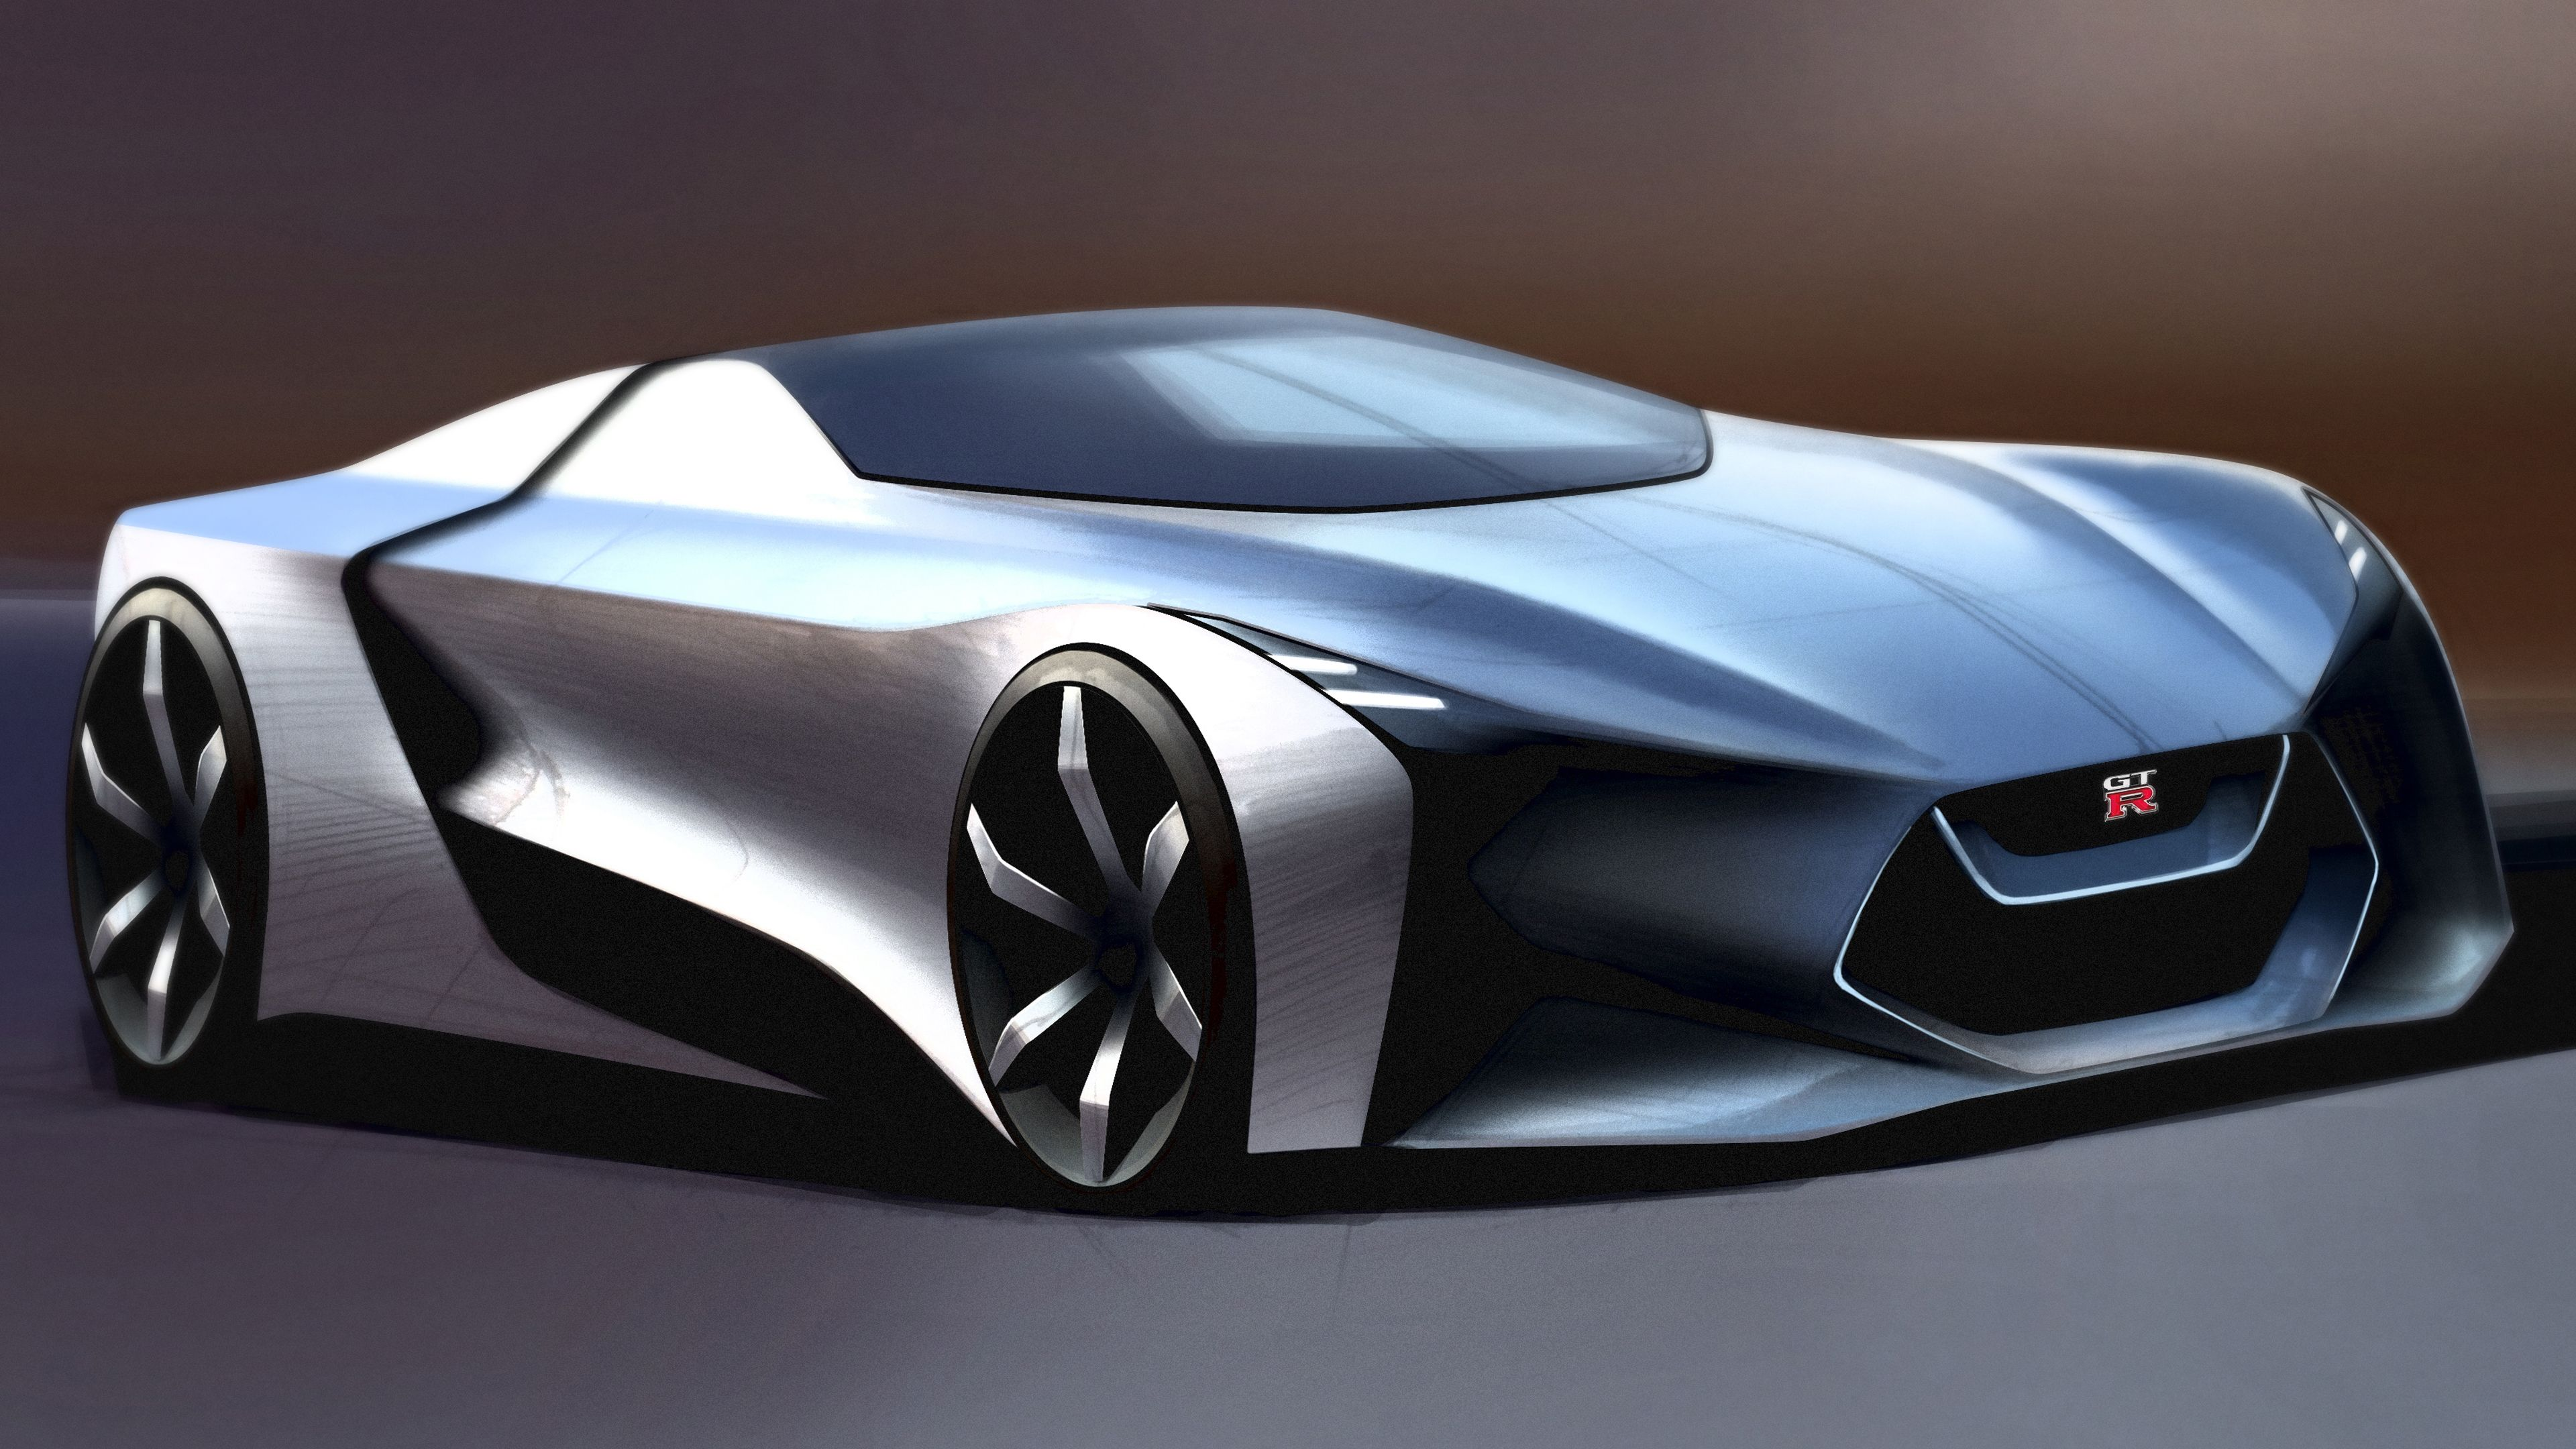 This A Reinterpretation Of The Nissan Gtr How Would It Look In 2025 Supercar Design Concept Car Design Futuristic Cars